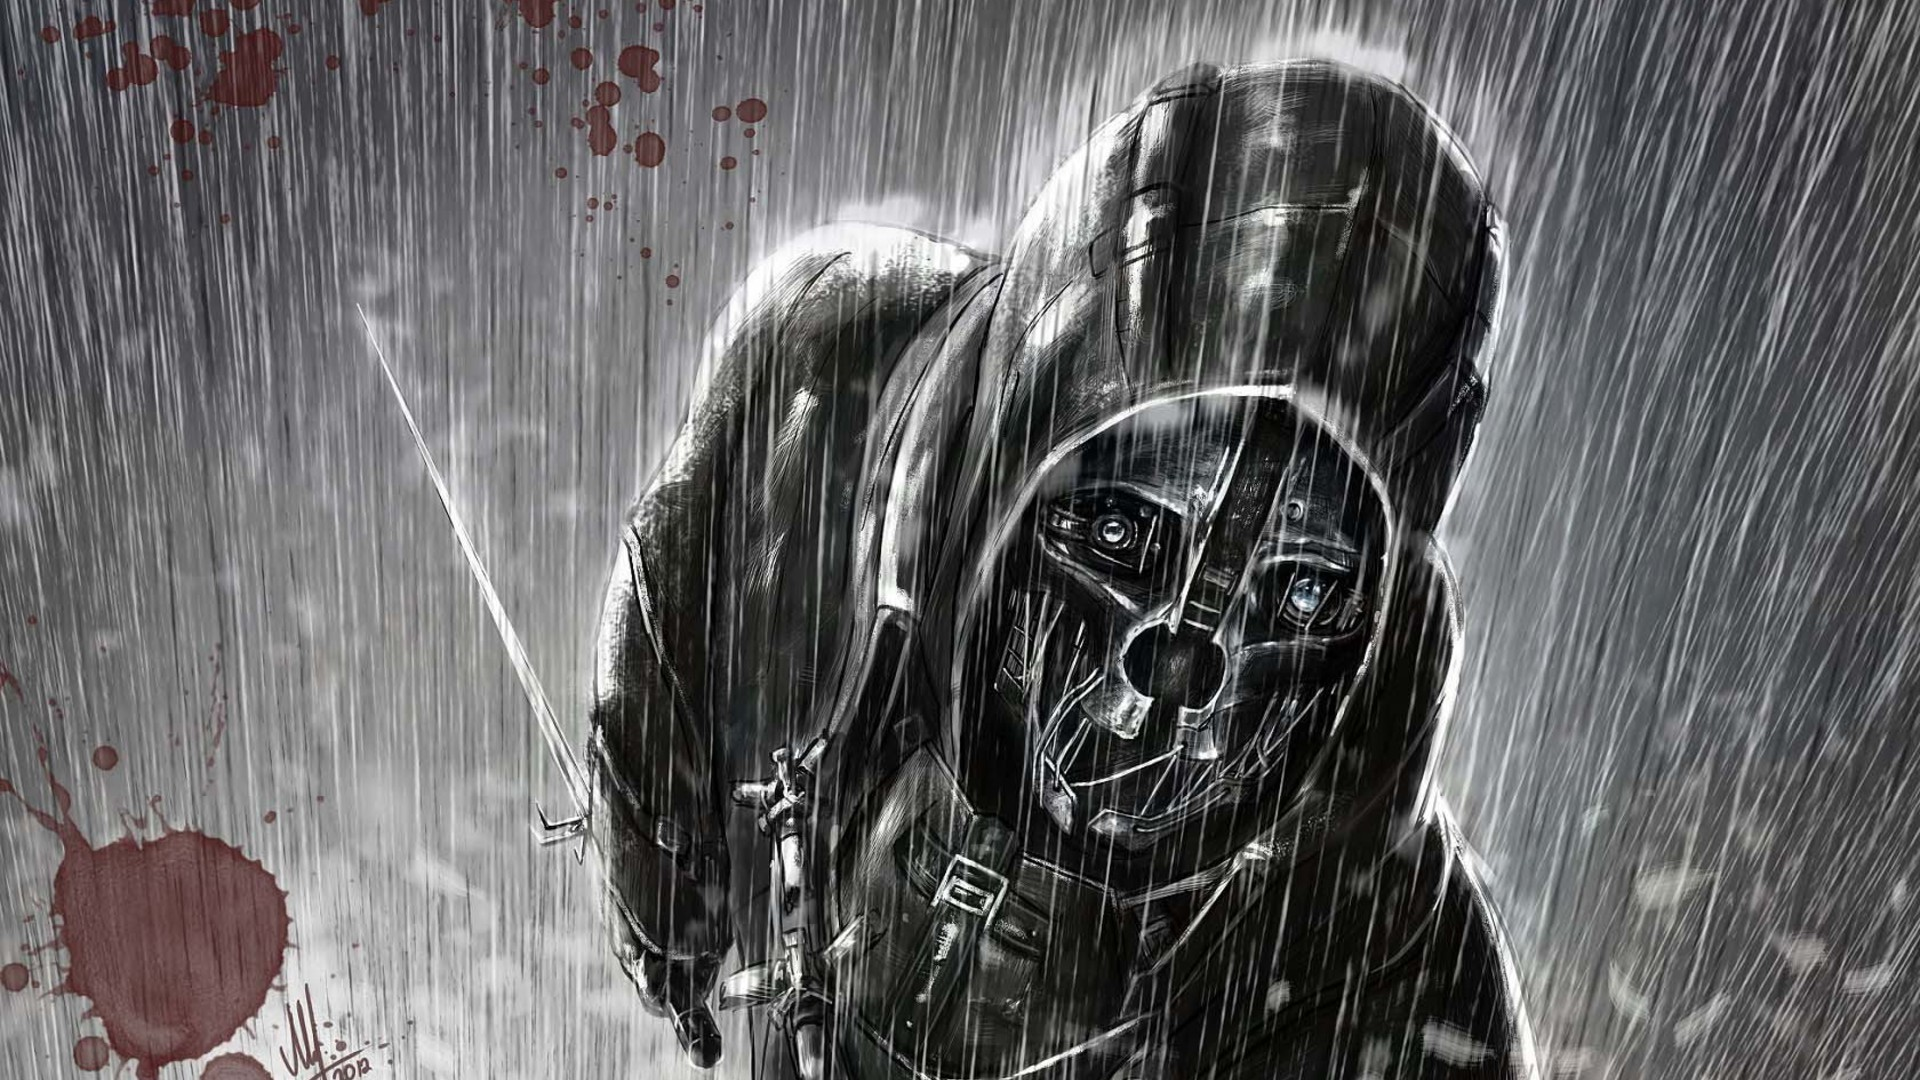 Dishonored Fan Art Corvo Video Games Wallpapers Hd: Rain Dishonored Corvo Attano Wallpaper